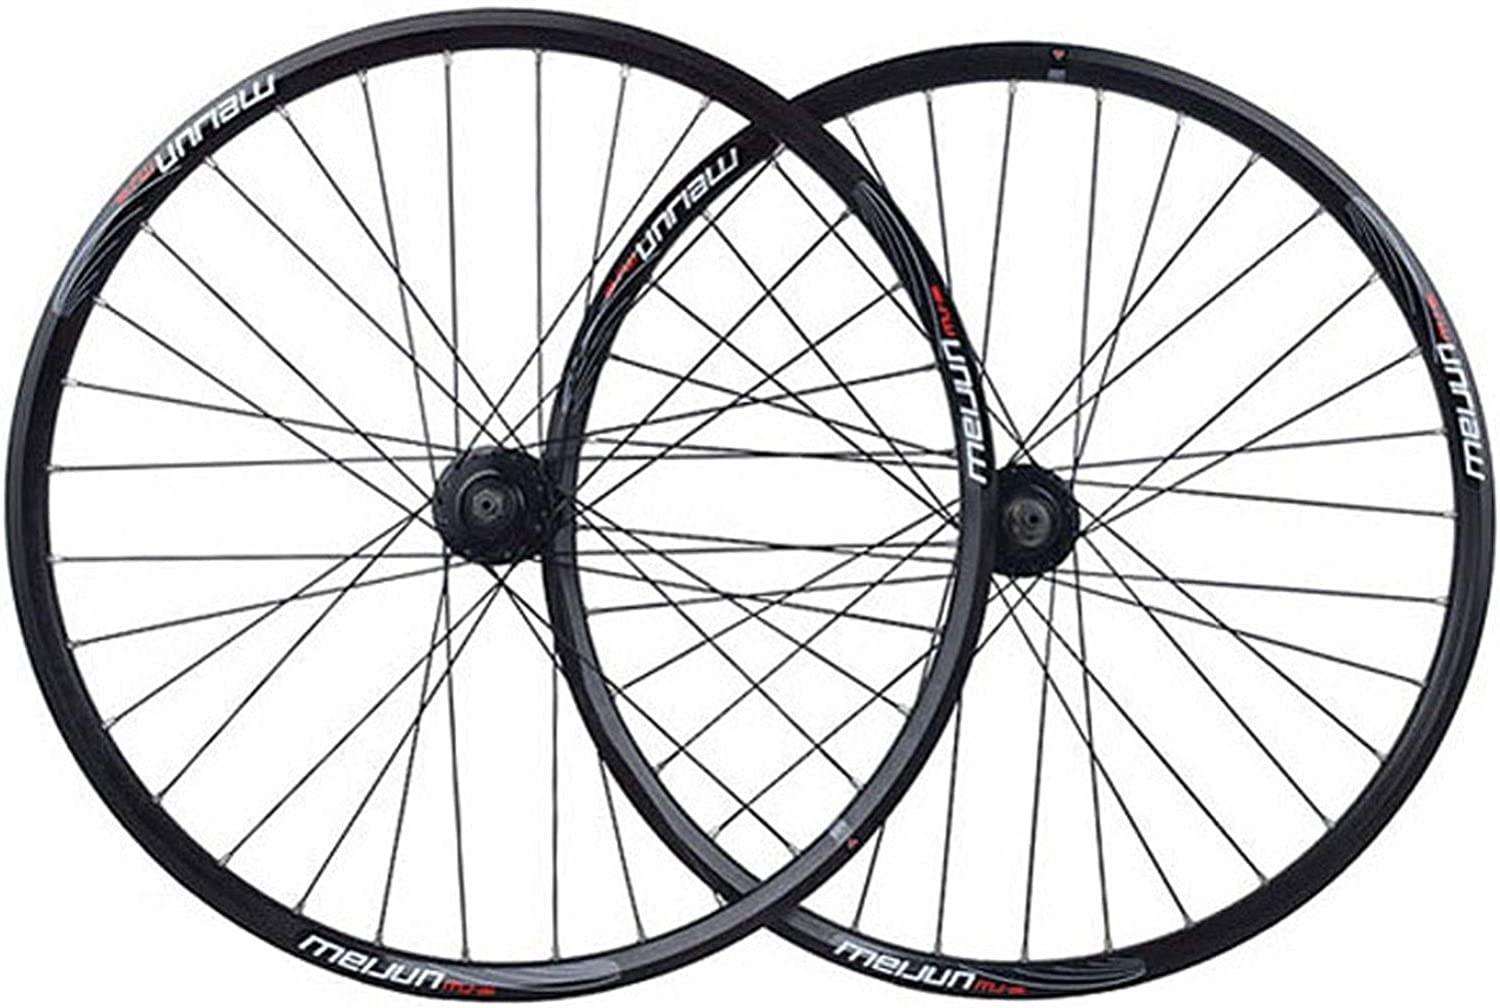 ZNND Bike Wheelset 26 Inch Outlet ☆ Free Shipping Bicycle Wheel Set Front Br Rear A surprise price is realized Disc